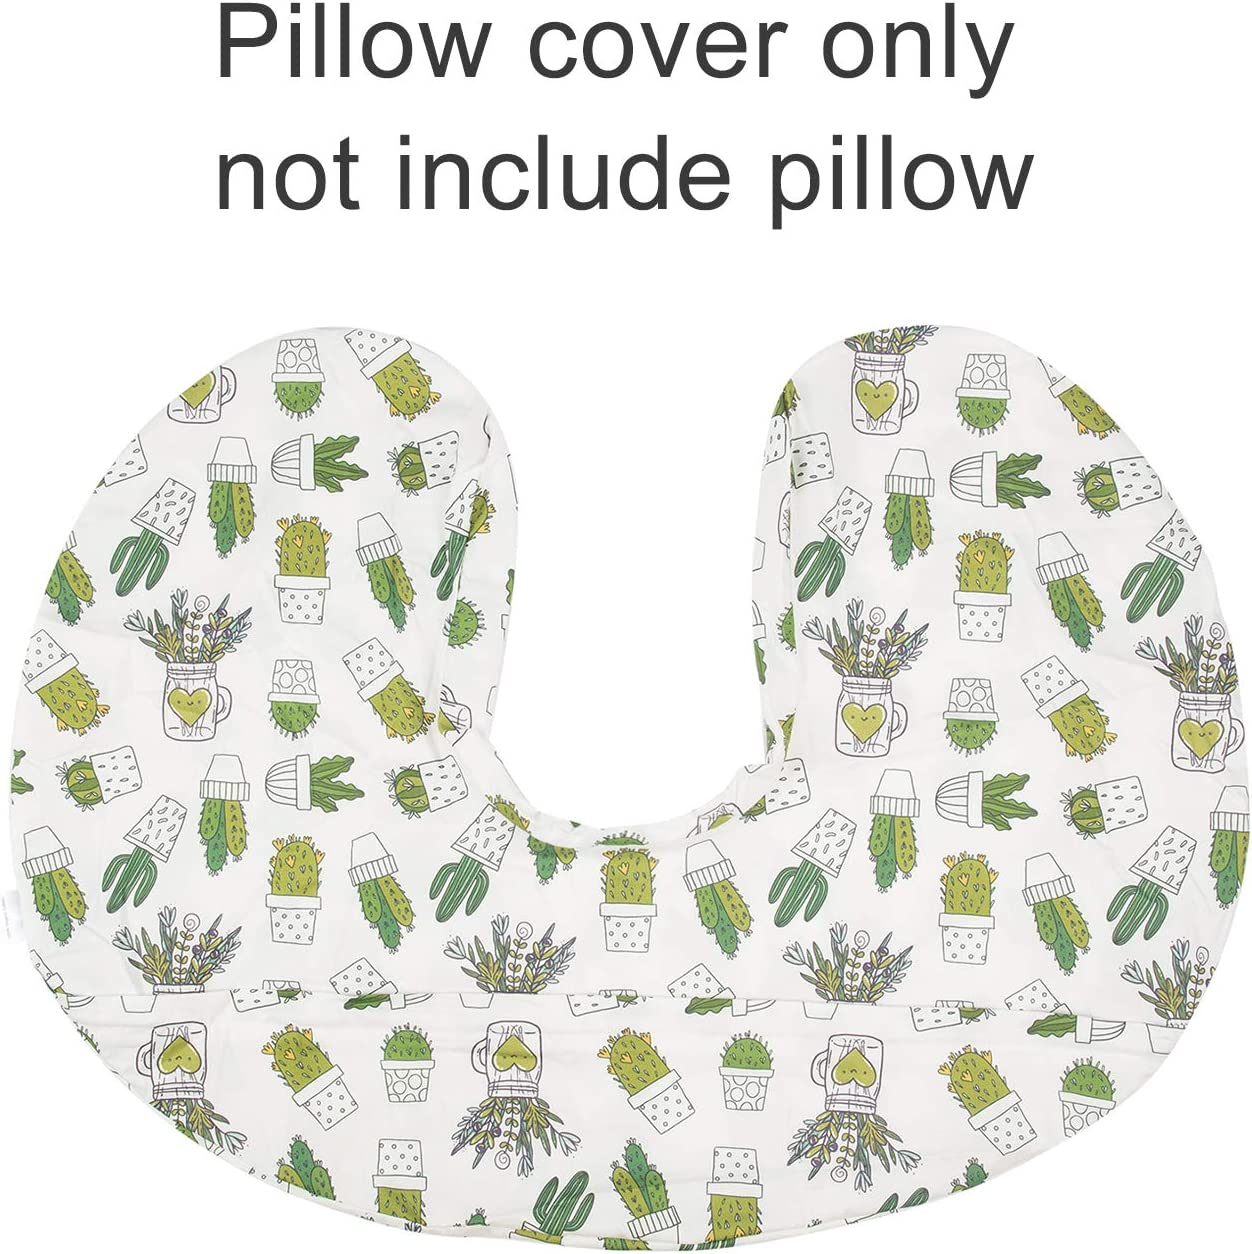 ALVABABY Nursing Pillow Cover Slipcover 100/% Organic Cotton Soft and Comfortable Maternity Breastfeeding Newborn Infant Feeding Cushion Cover Baby Shower Gift 2UBZTW08-CA